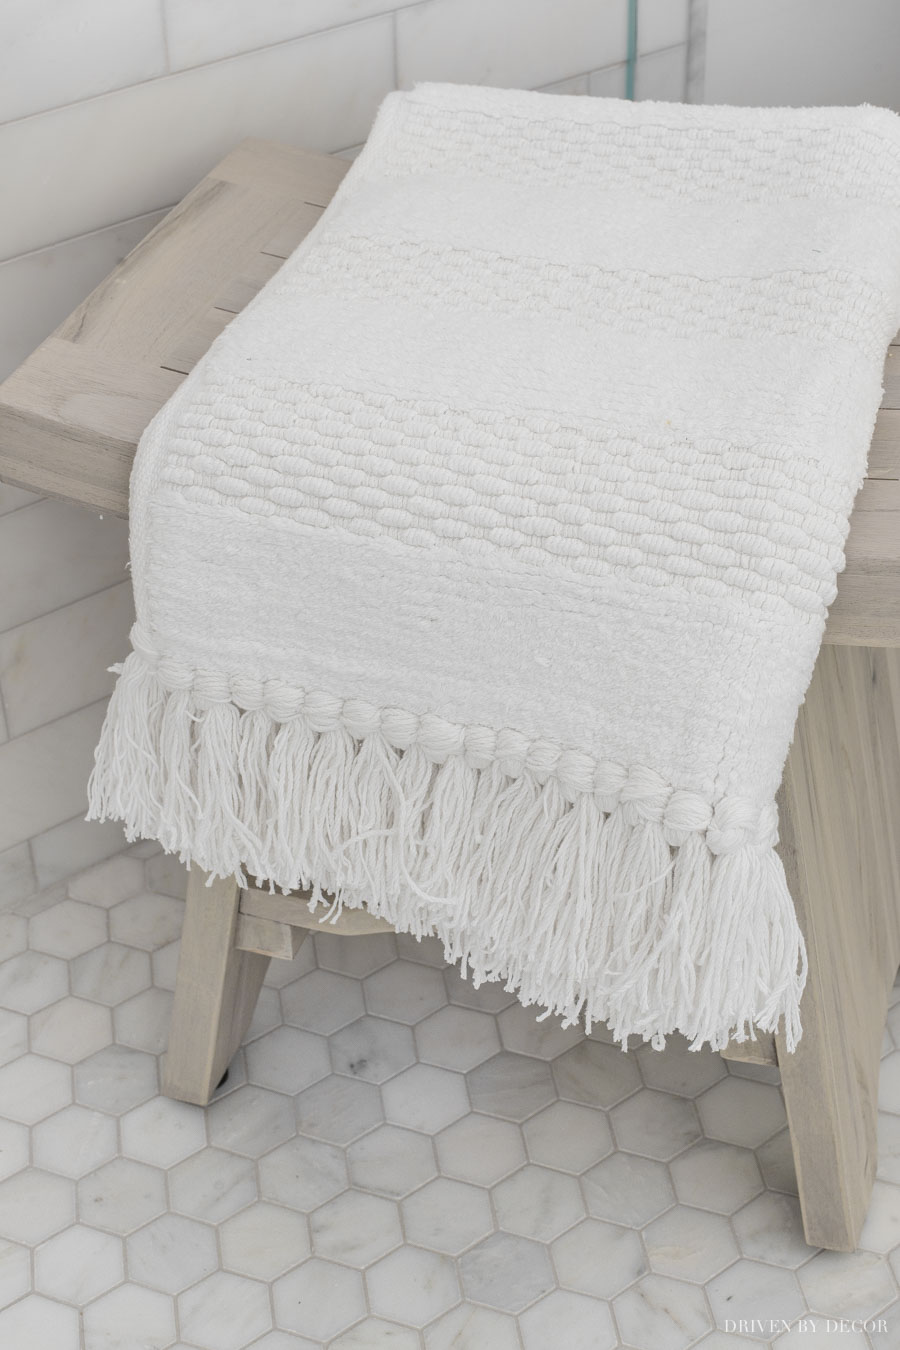 The cutest bathmat on this shower bench!